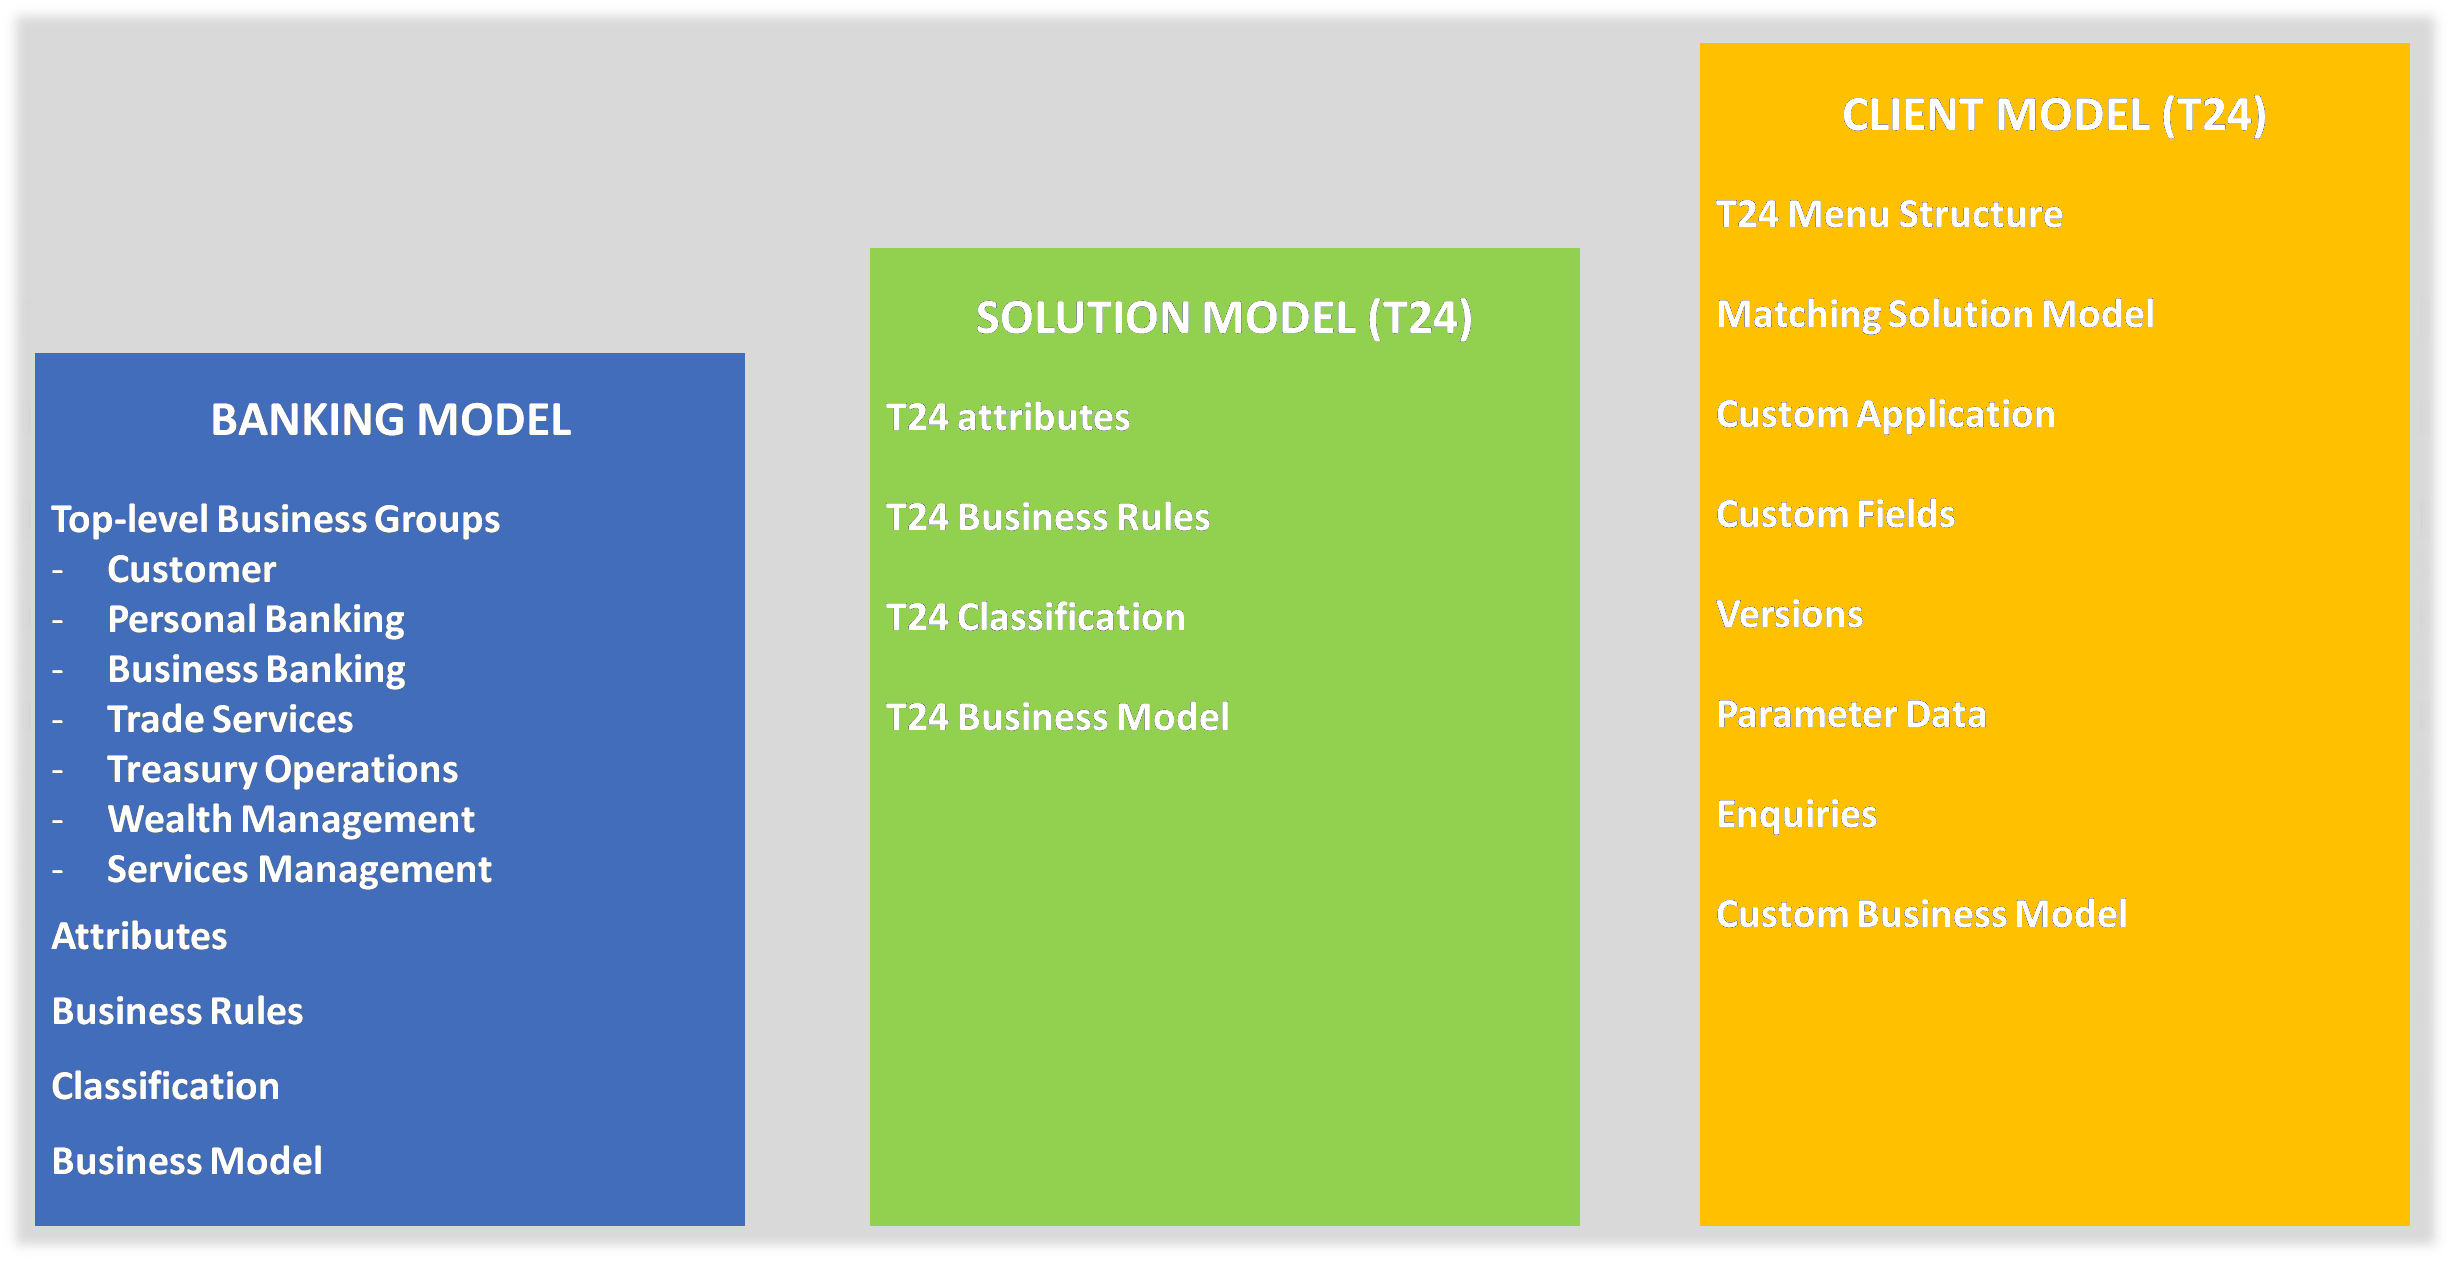 Solution Specific Models for Temenos T24